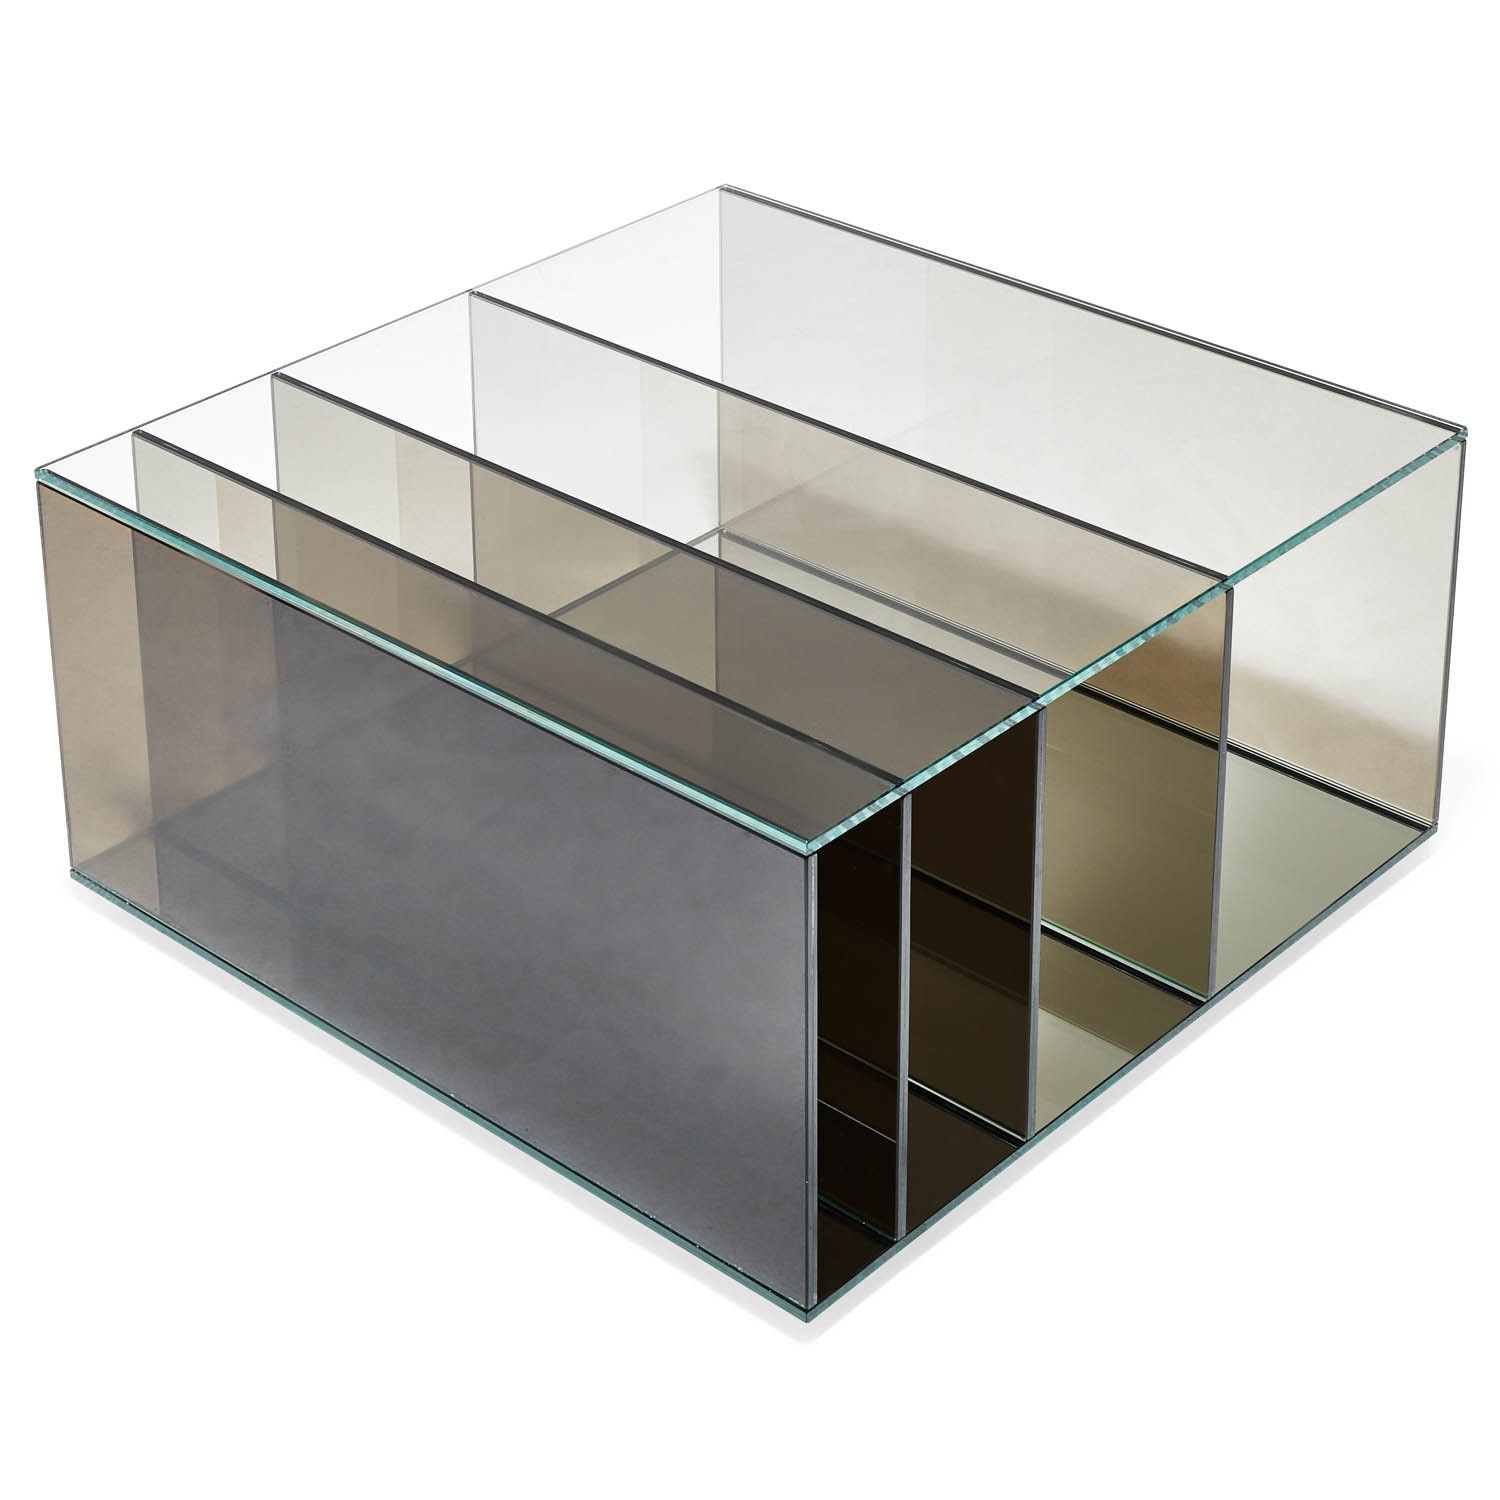 A blend of centuries-old Italian craftsmanship and the innovative art of glass making technology. Designed by Piero Lissoni and handcrafted from extra-light, thermo-welded glass - and nothing else - this piece is an extraordinary feat of modern design. A mirror base bestows great depth and inspires a play of magical reflections and gradient color, while compartments at the bottom provide storage space.